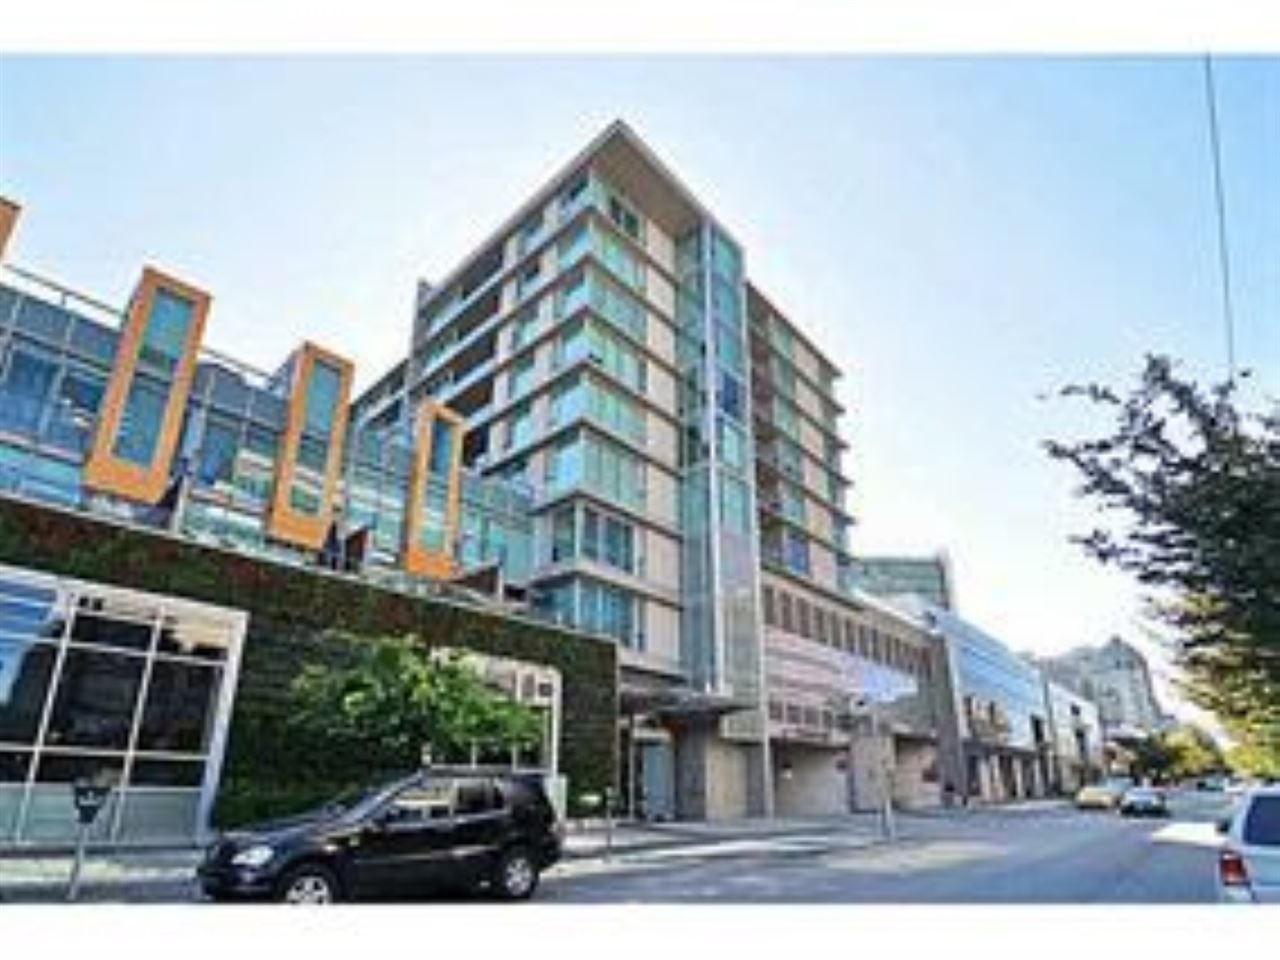 Main Photo: 712 522 W 8TH AVENUE in Vancouver: Fairview VW Condo for sale (Vancouver West)  : MLS®# R2294964